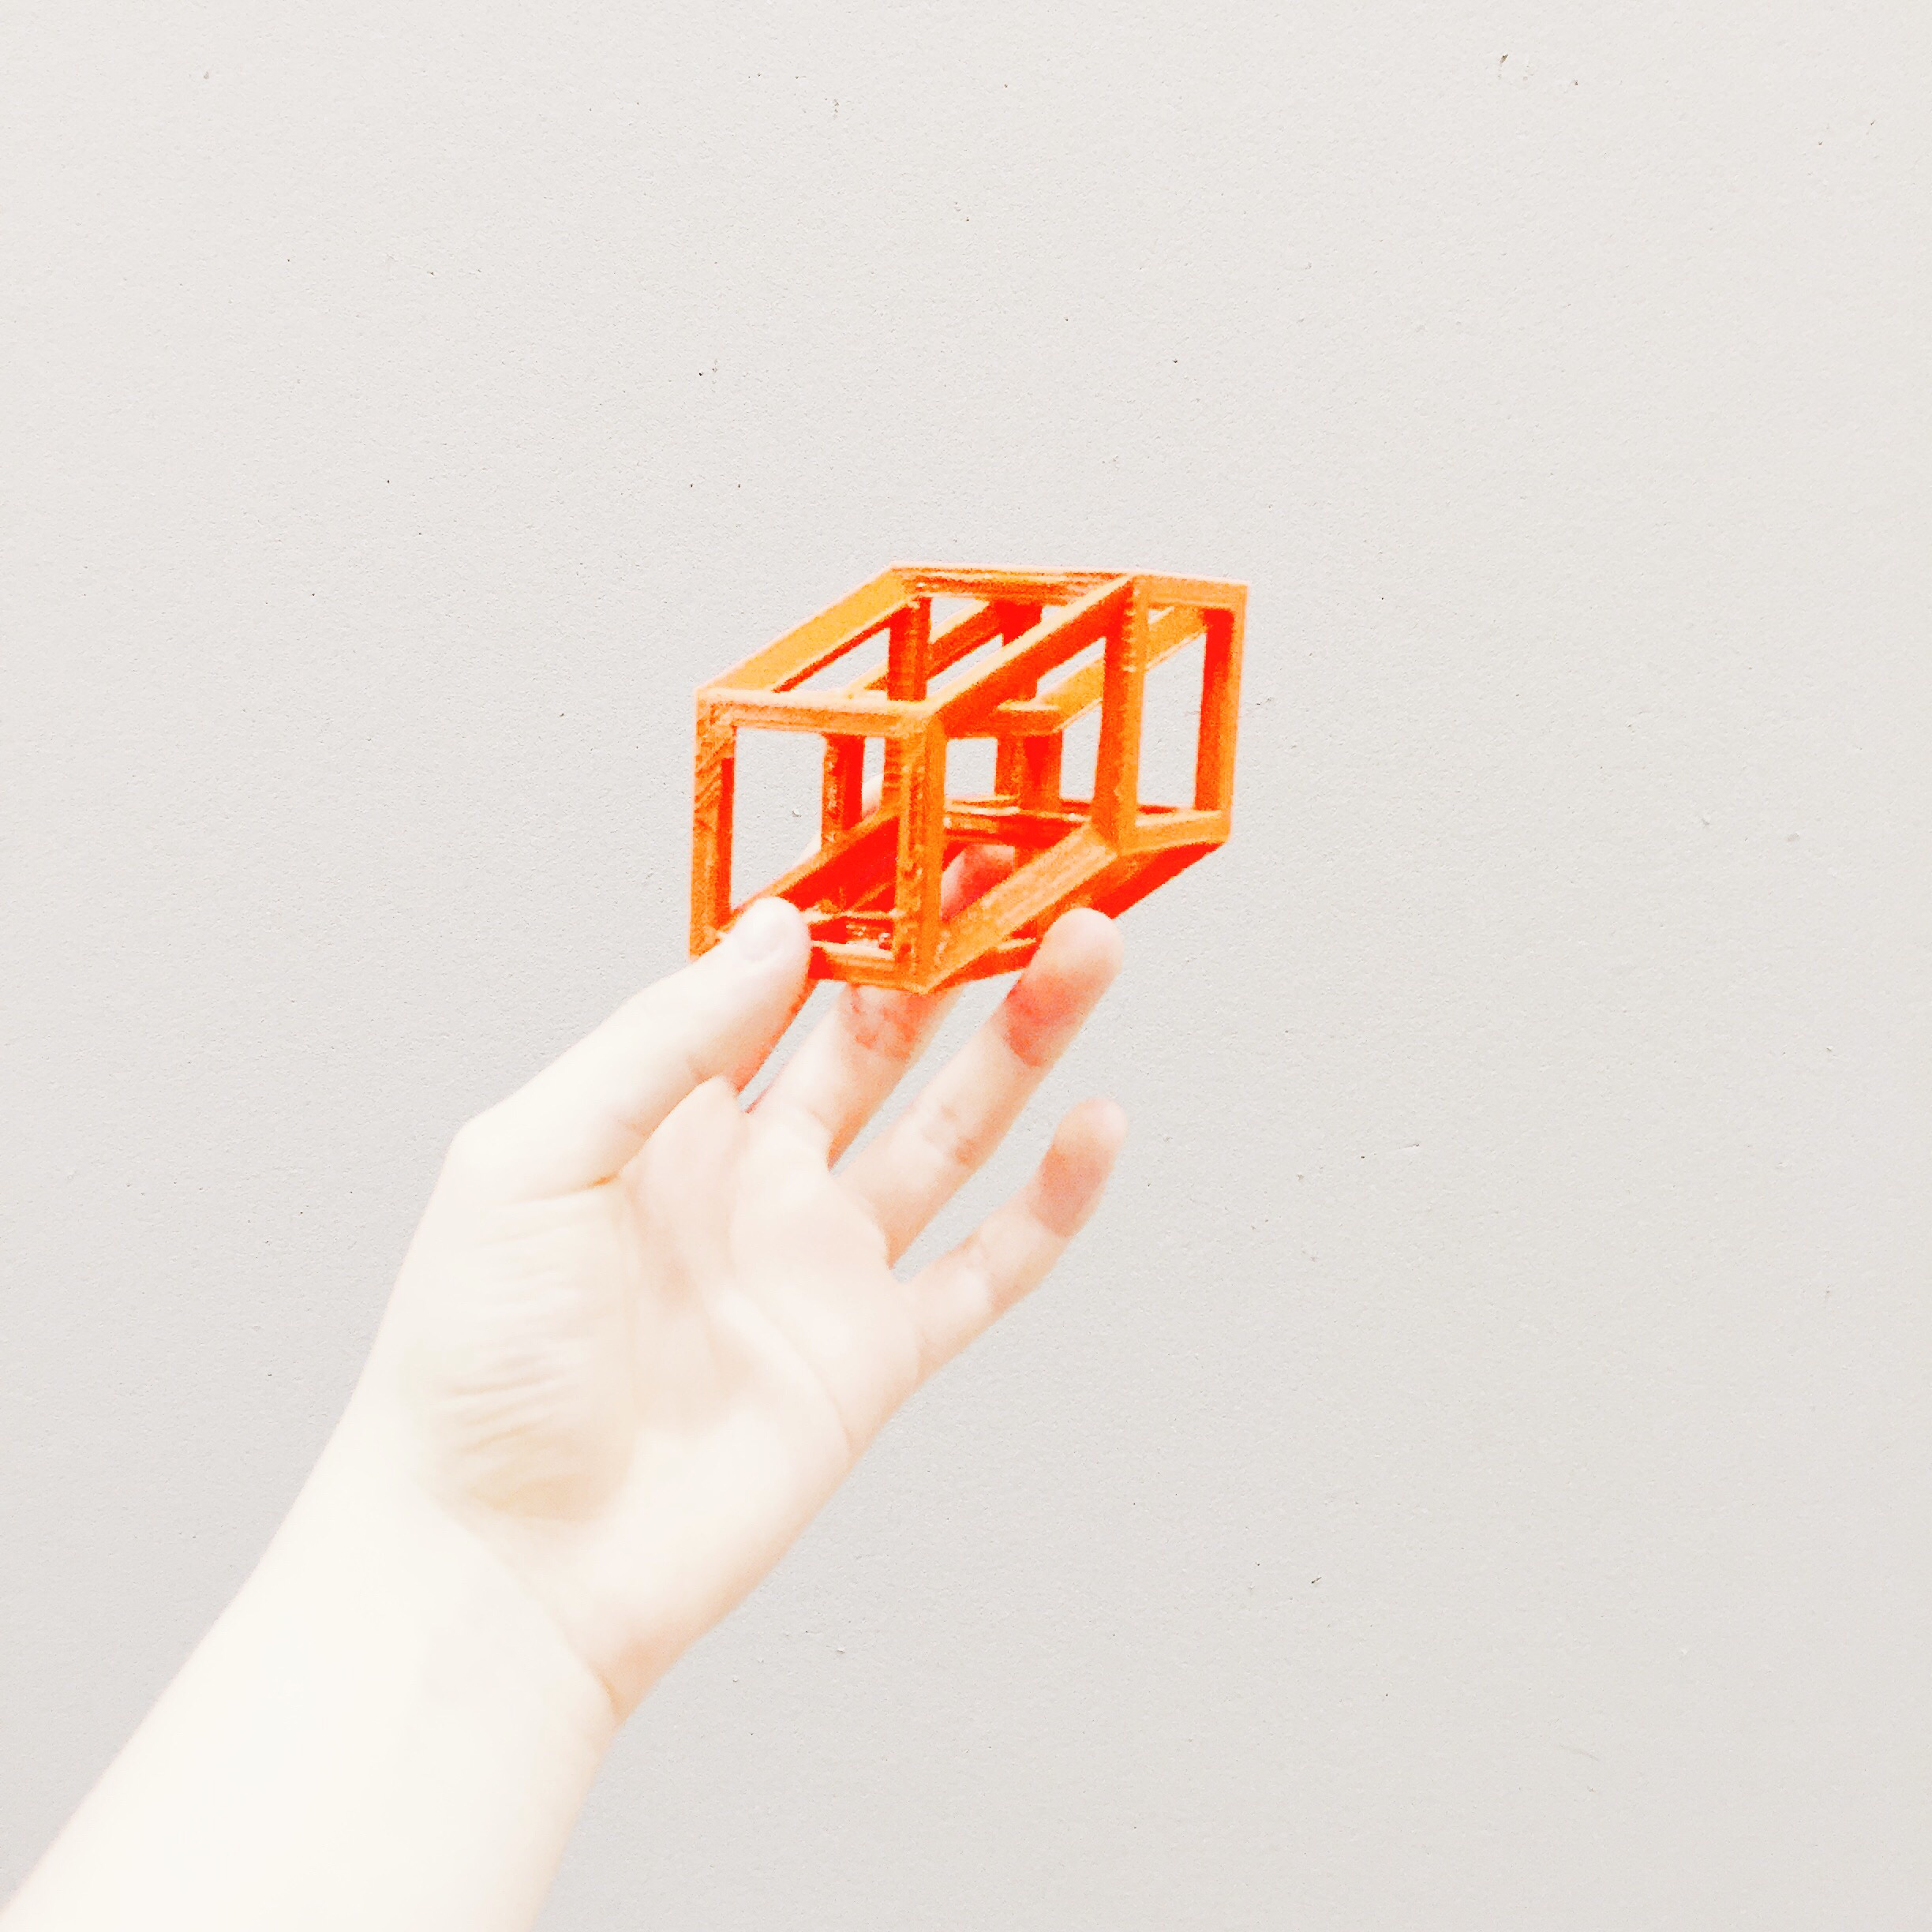 4D printed hypercube in 3D